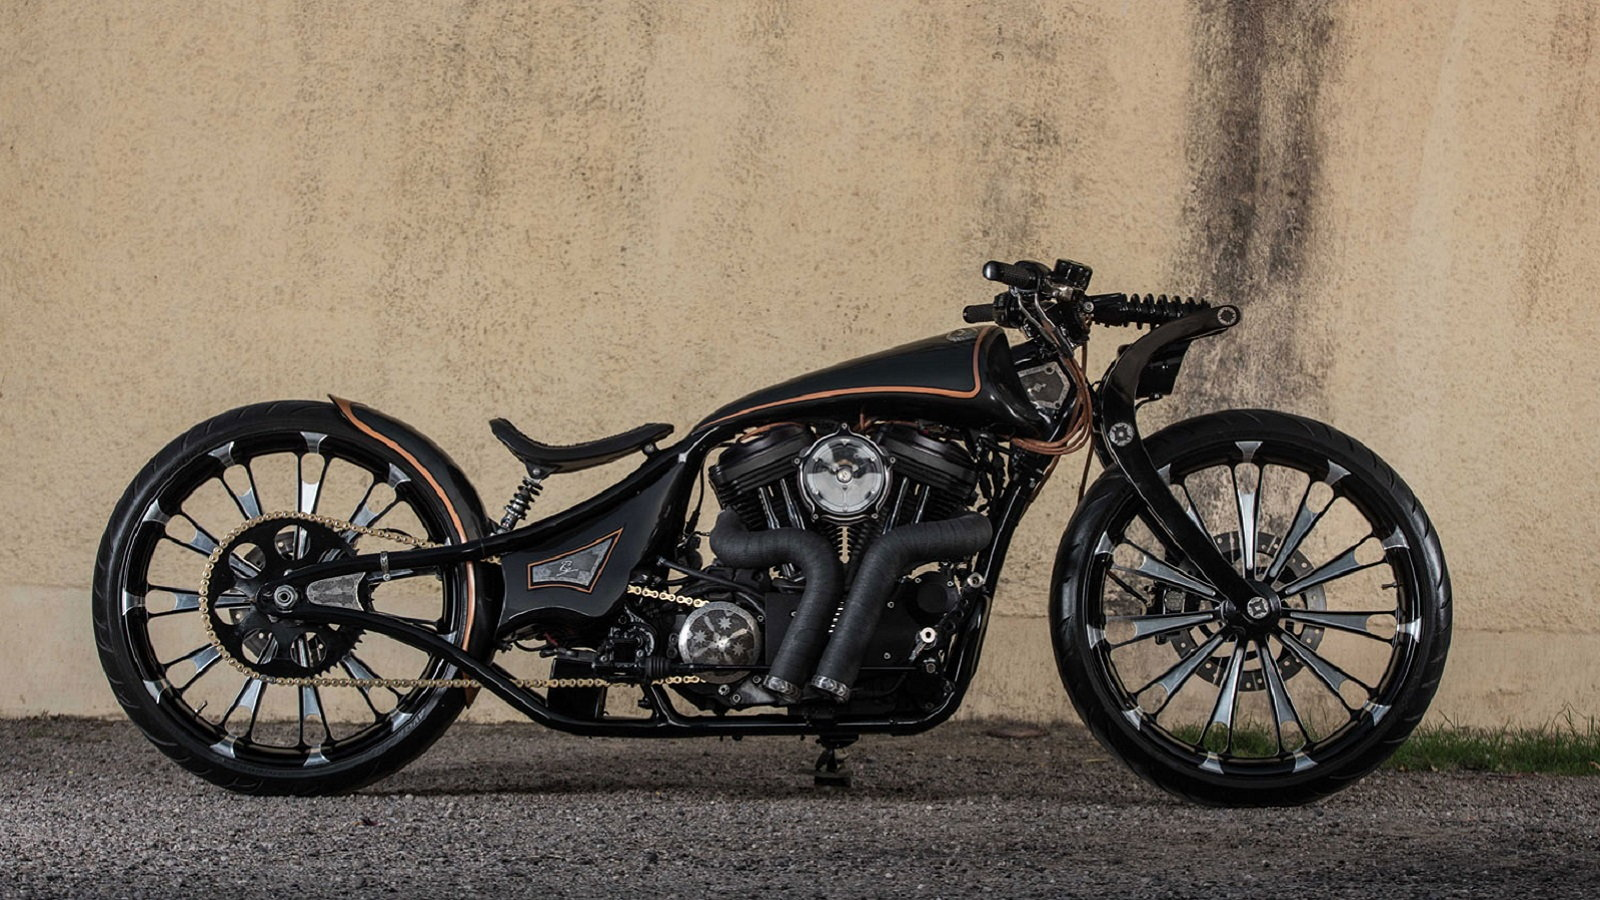 Indian-Built Custom Iron 883 Looks like the Future